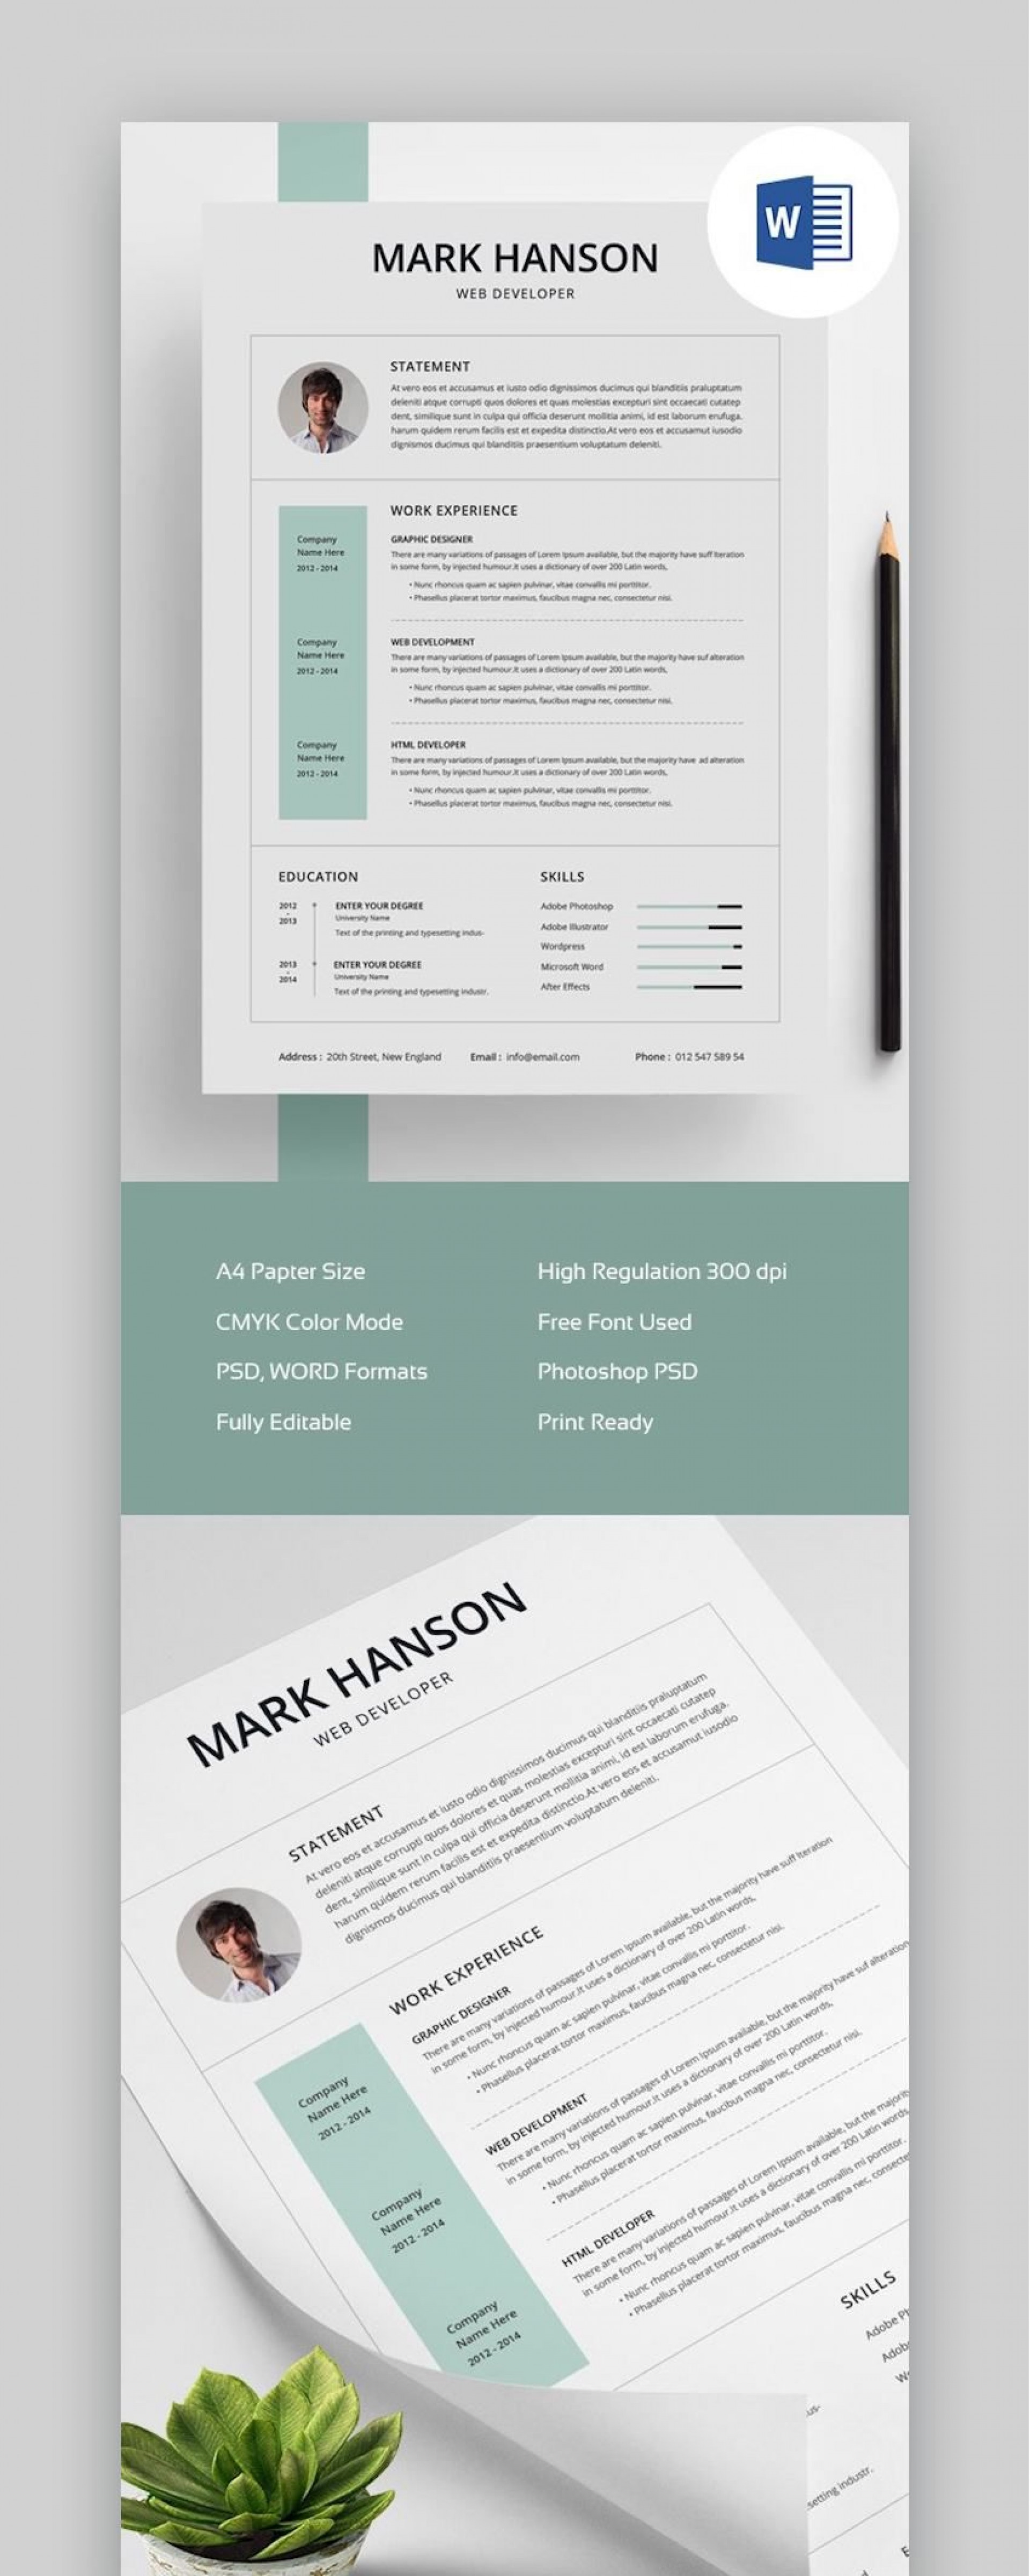 003 Archaicawful Download Elegant Resume Template Microsoft Word Image 1920